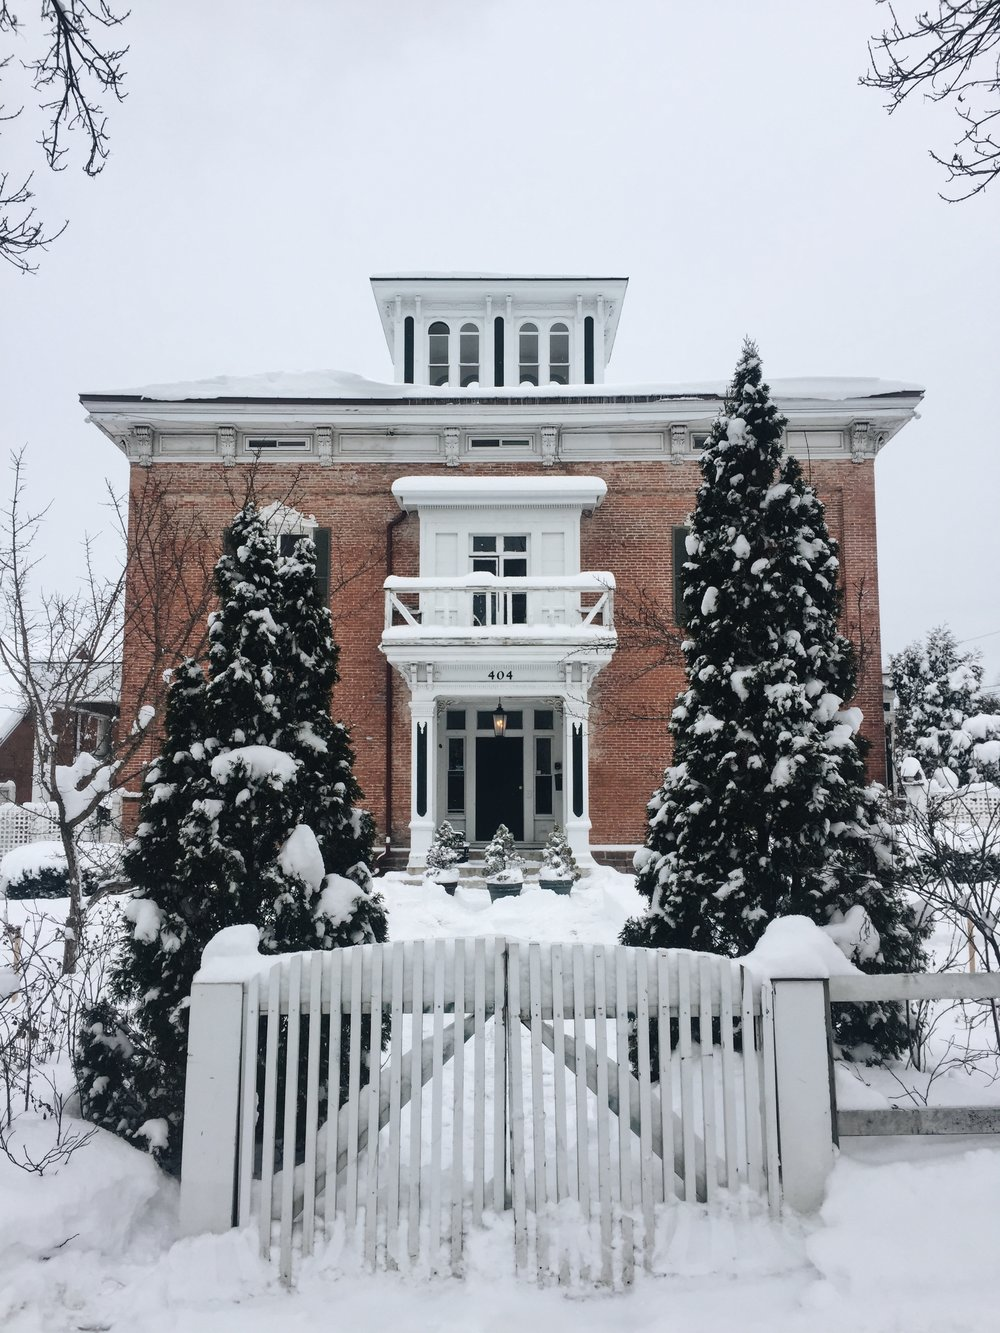 A SNOWY BURLINGTON AFTER A FRESH FOOT OF SNOWFALL.